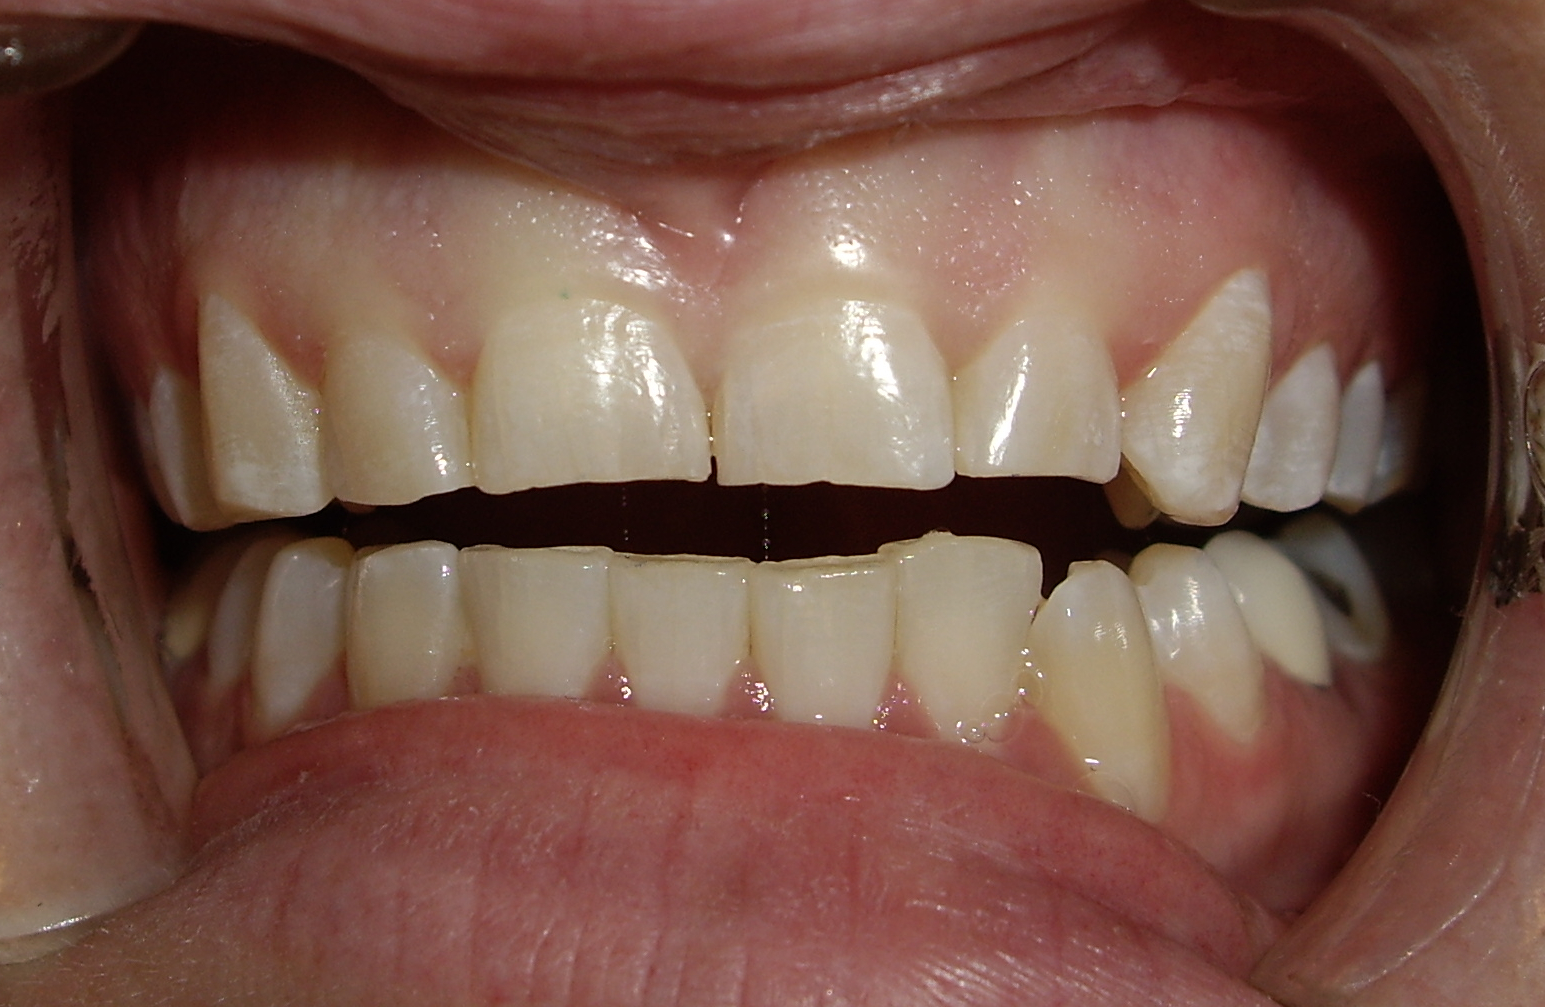 Before treatment  Young female with chronic history of bruxism (teeth grinding). She had significant wear on her maxillary incisors and canines. Her main concern was regaining her full smile for her wedding.